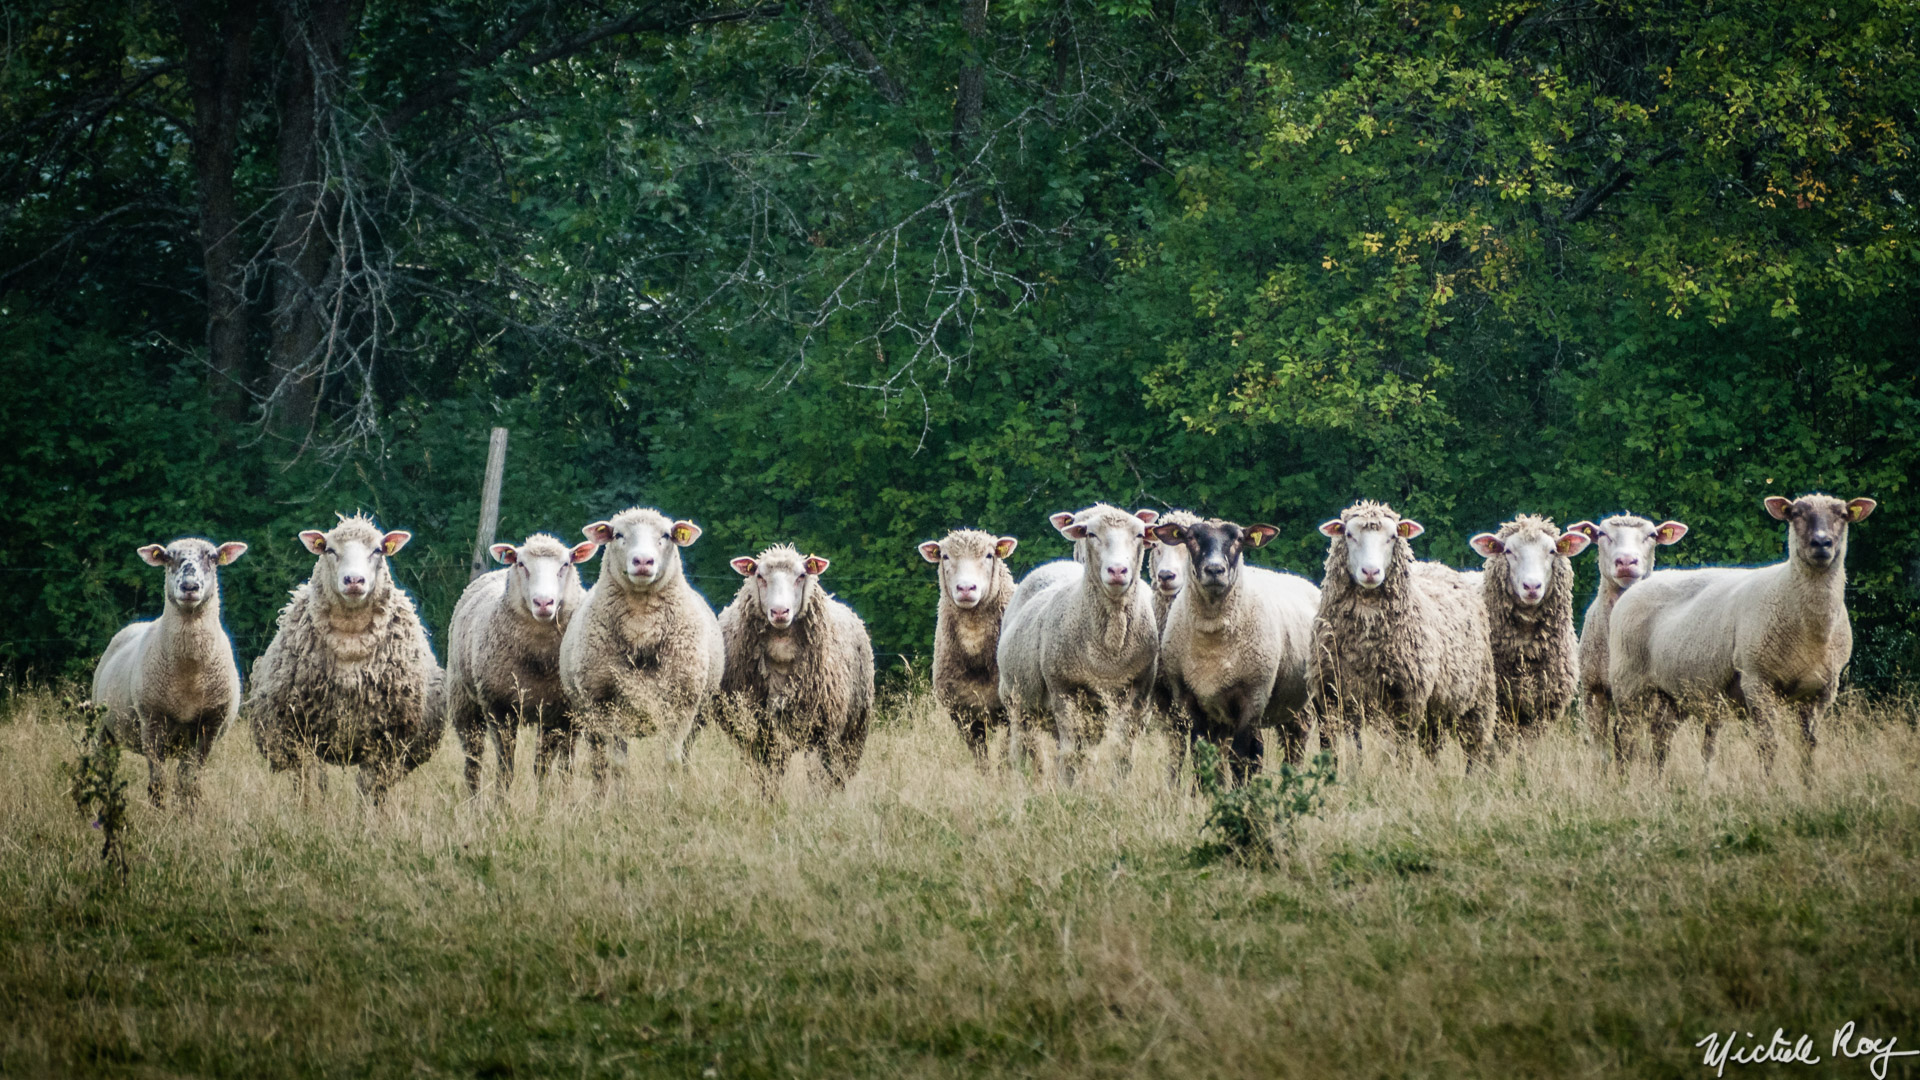 Moutons au pacage / Sheep grazing